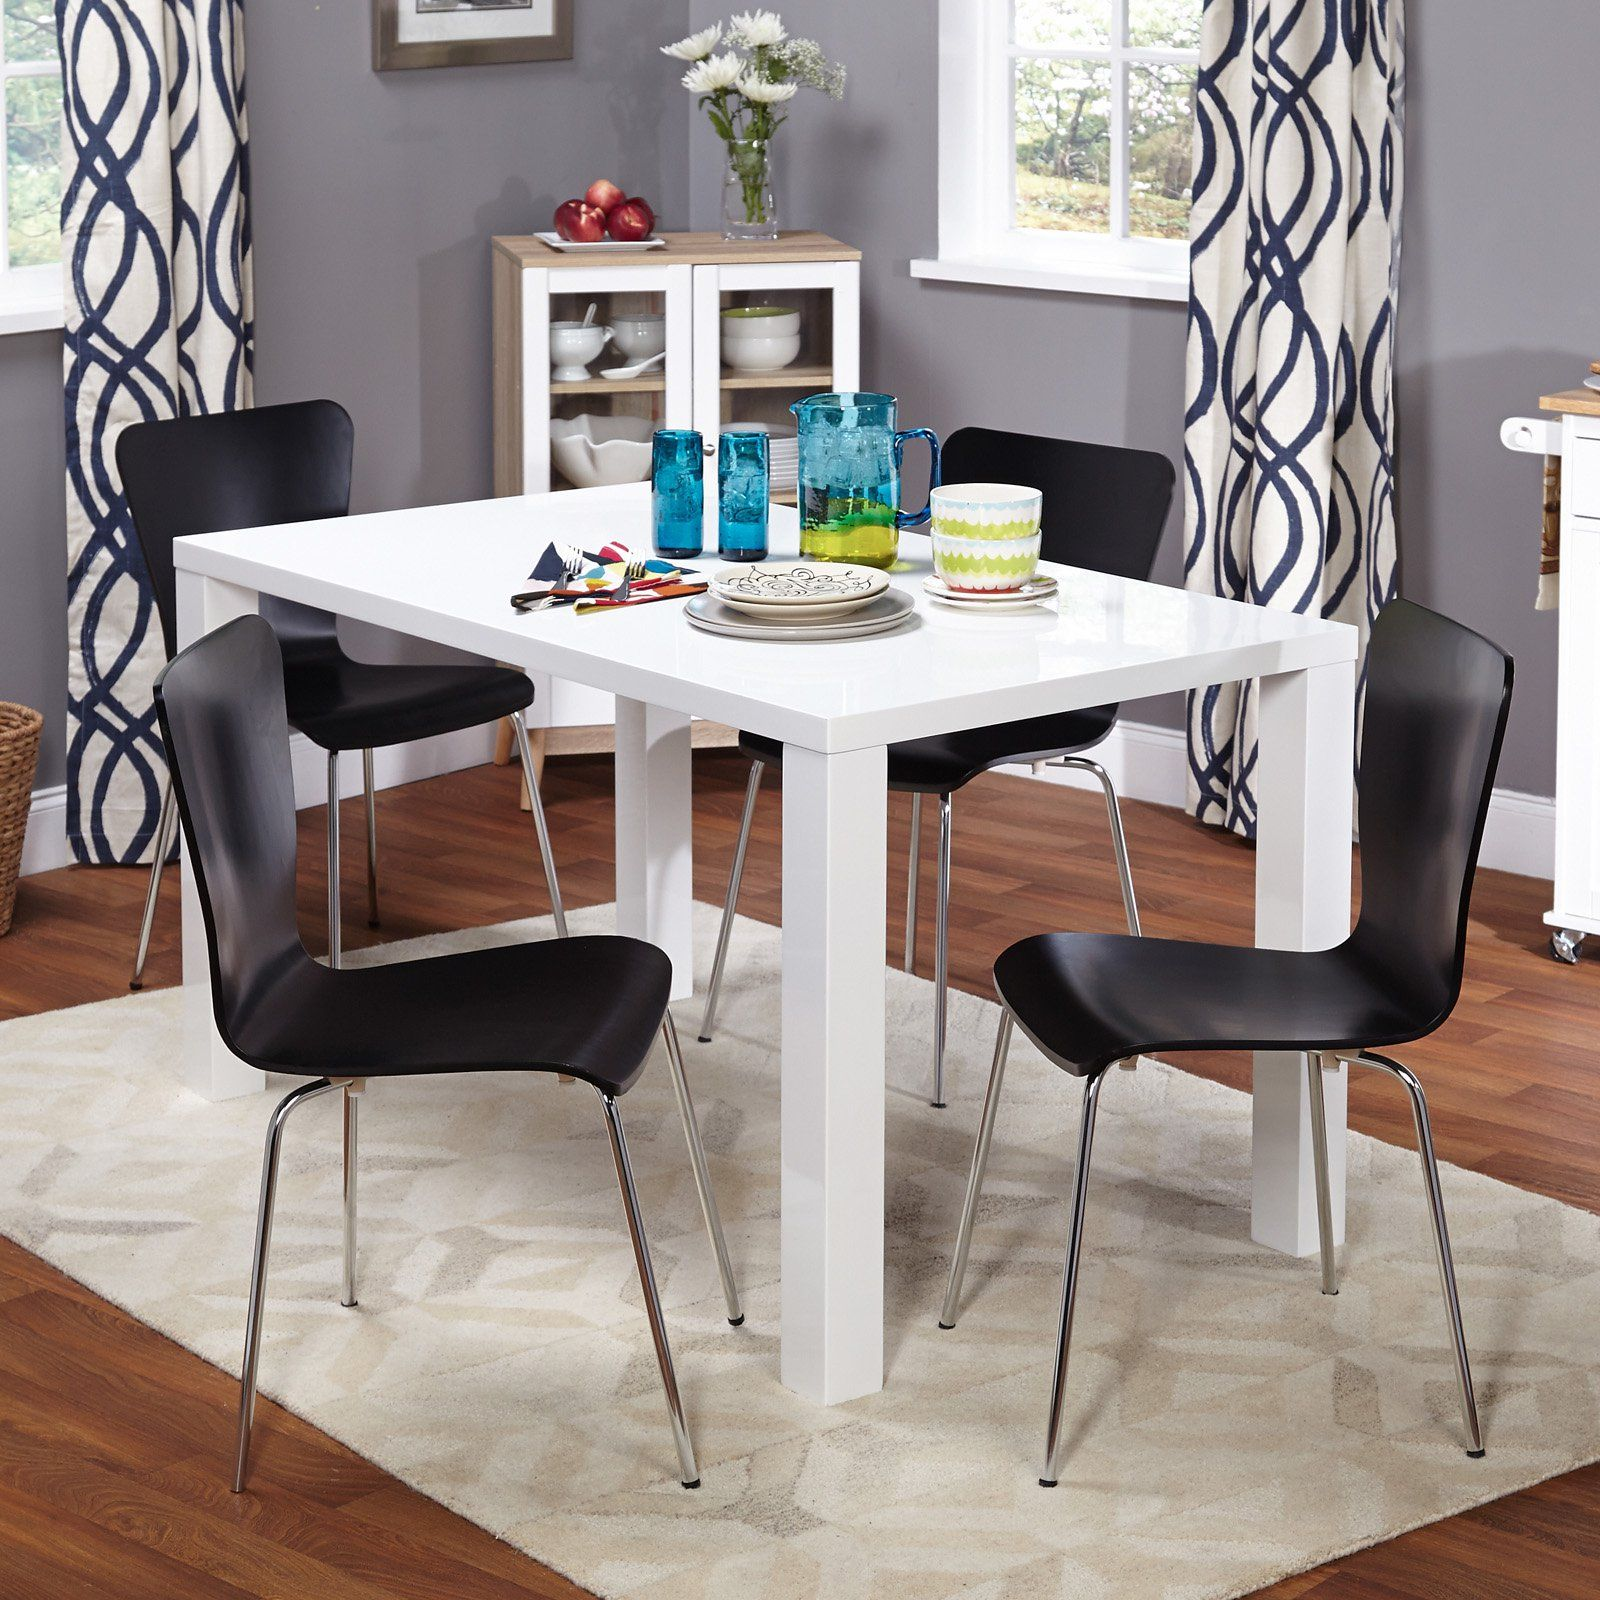 Target Marketing Systems Felix 5 Piece Dining Table Set White